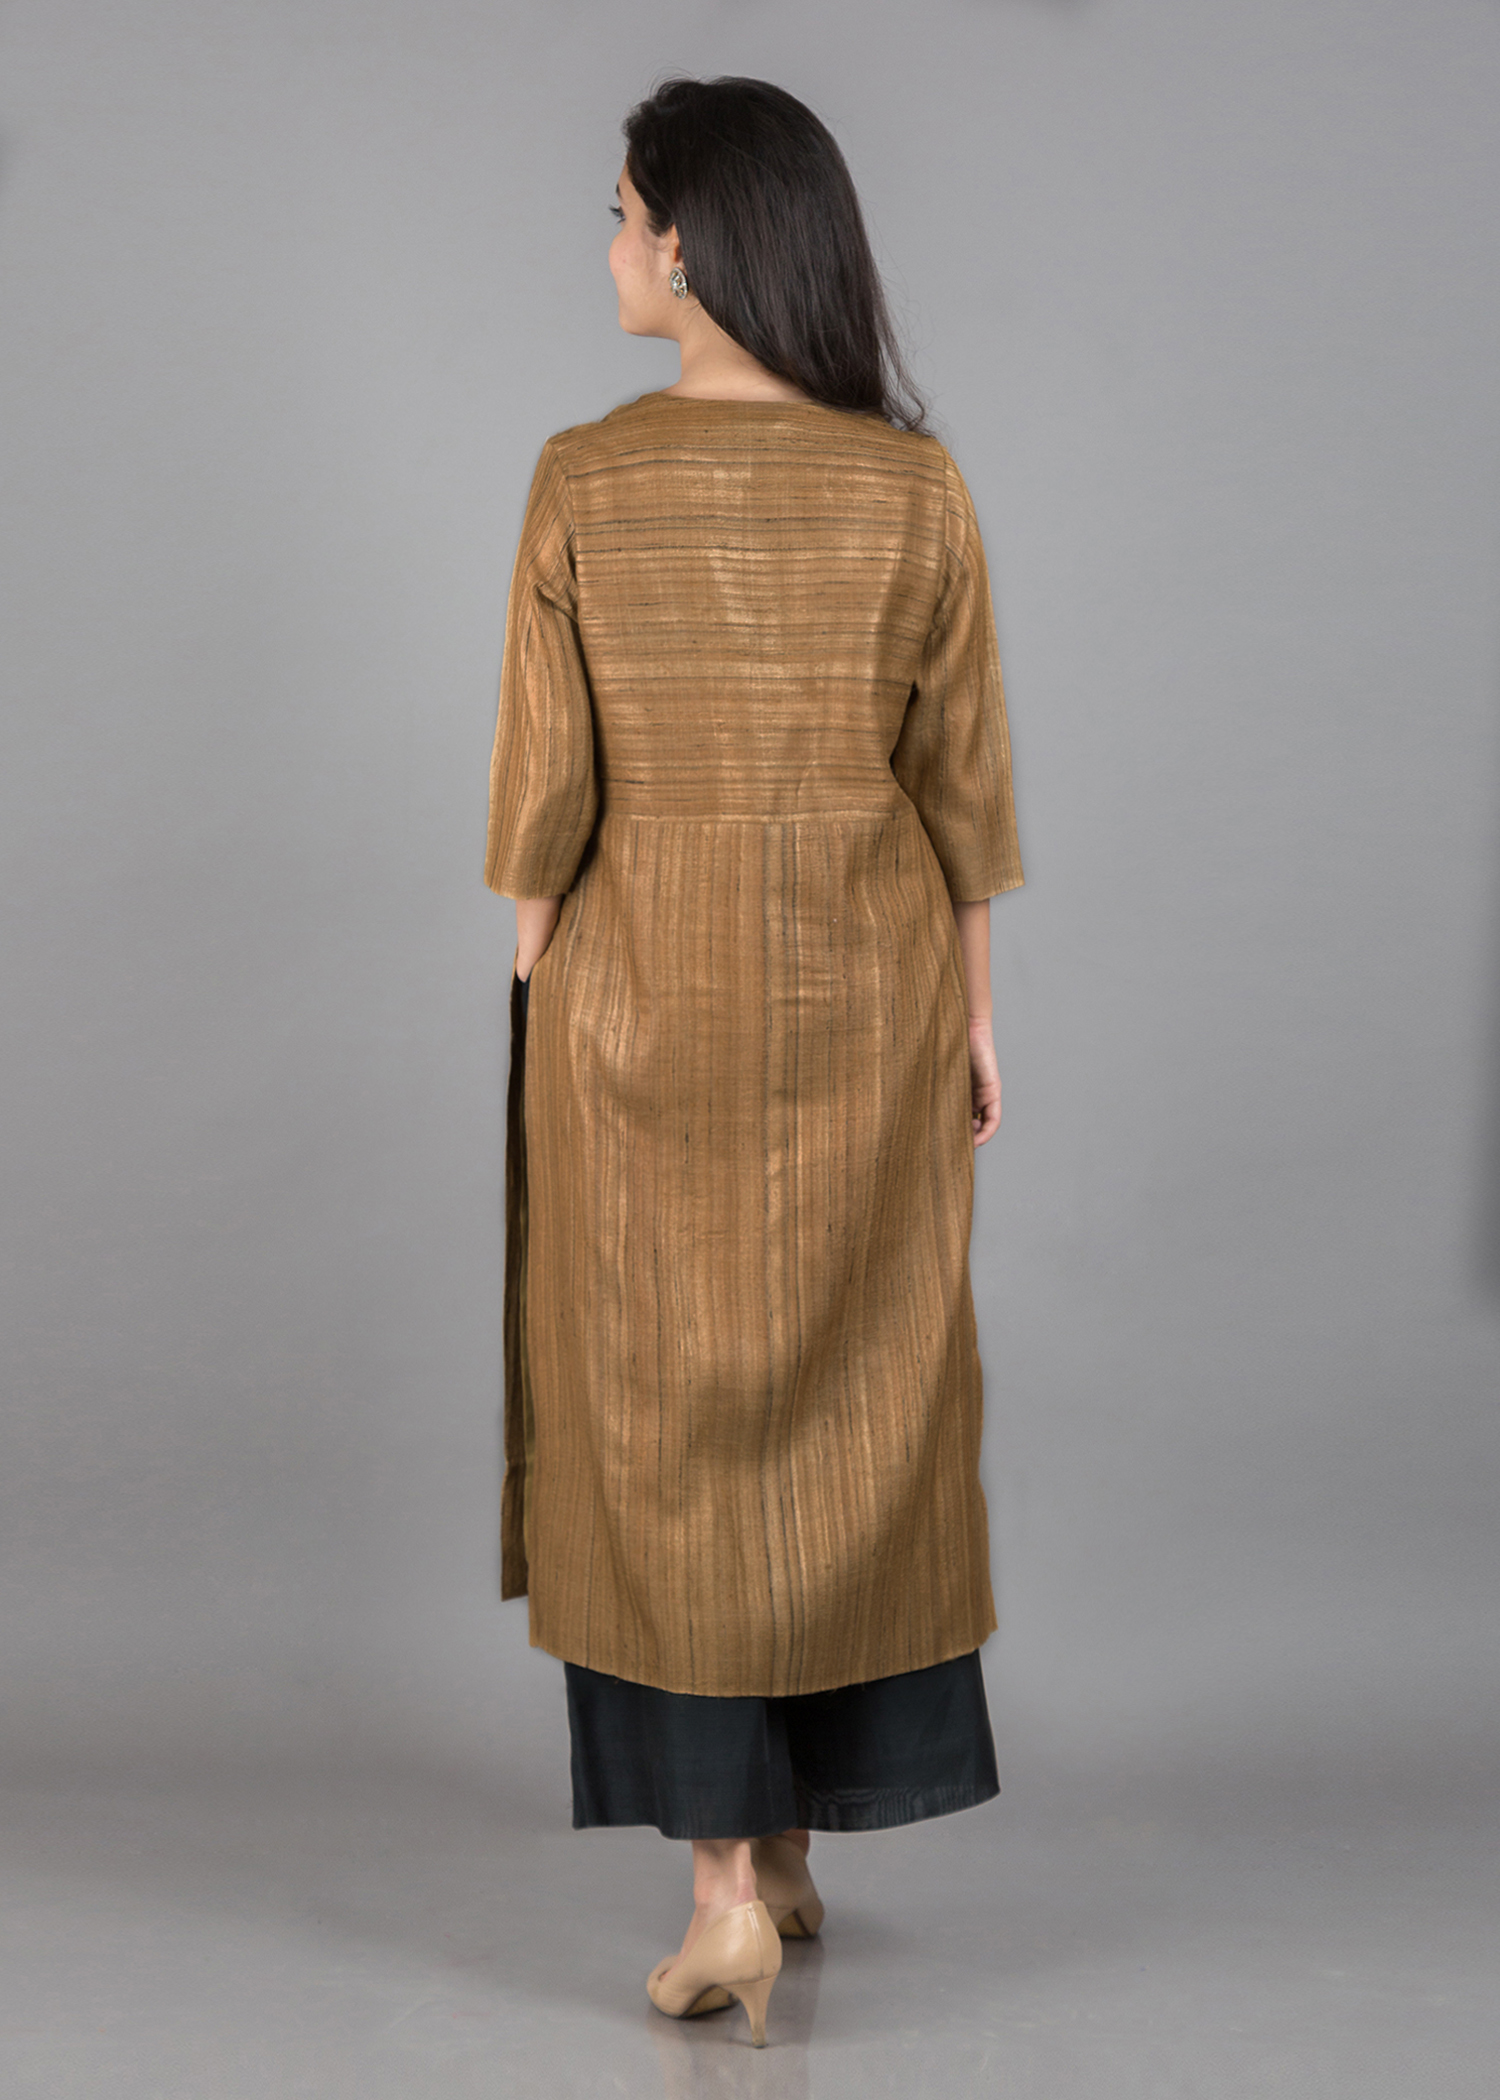 catalog/October-November 2017/kosa kurta 3.jpg